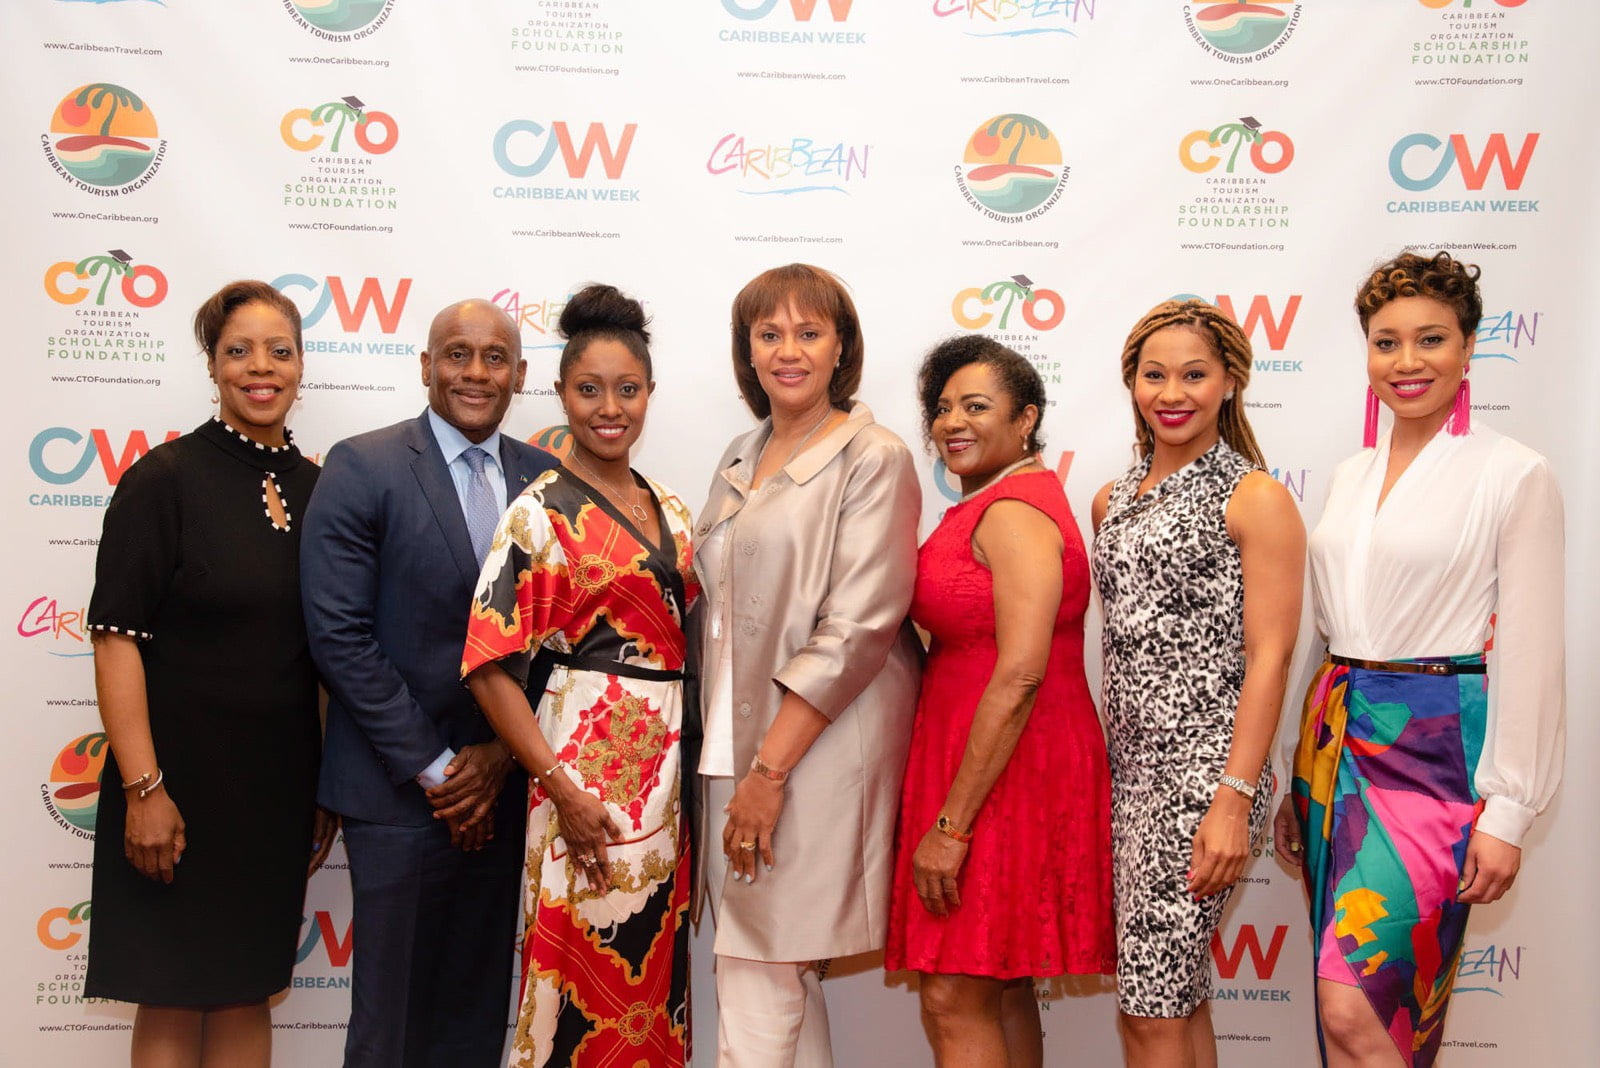 Tourism's DG leads delegation at Caribbean Tourism Organization week in NYC